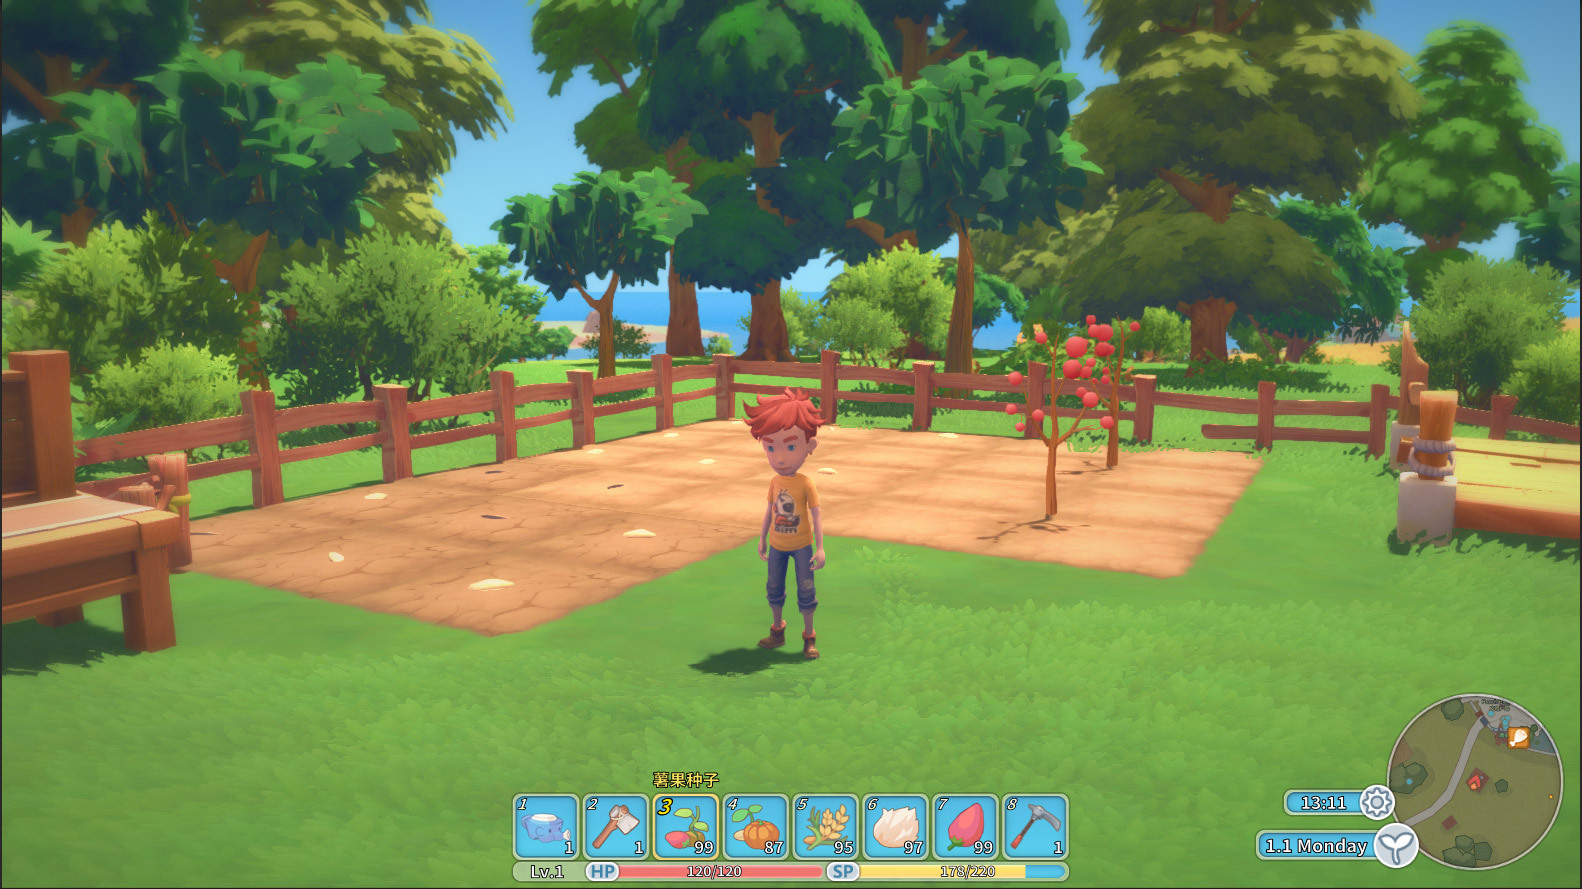 My Time At Portia :: Farming - To be or not to be?